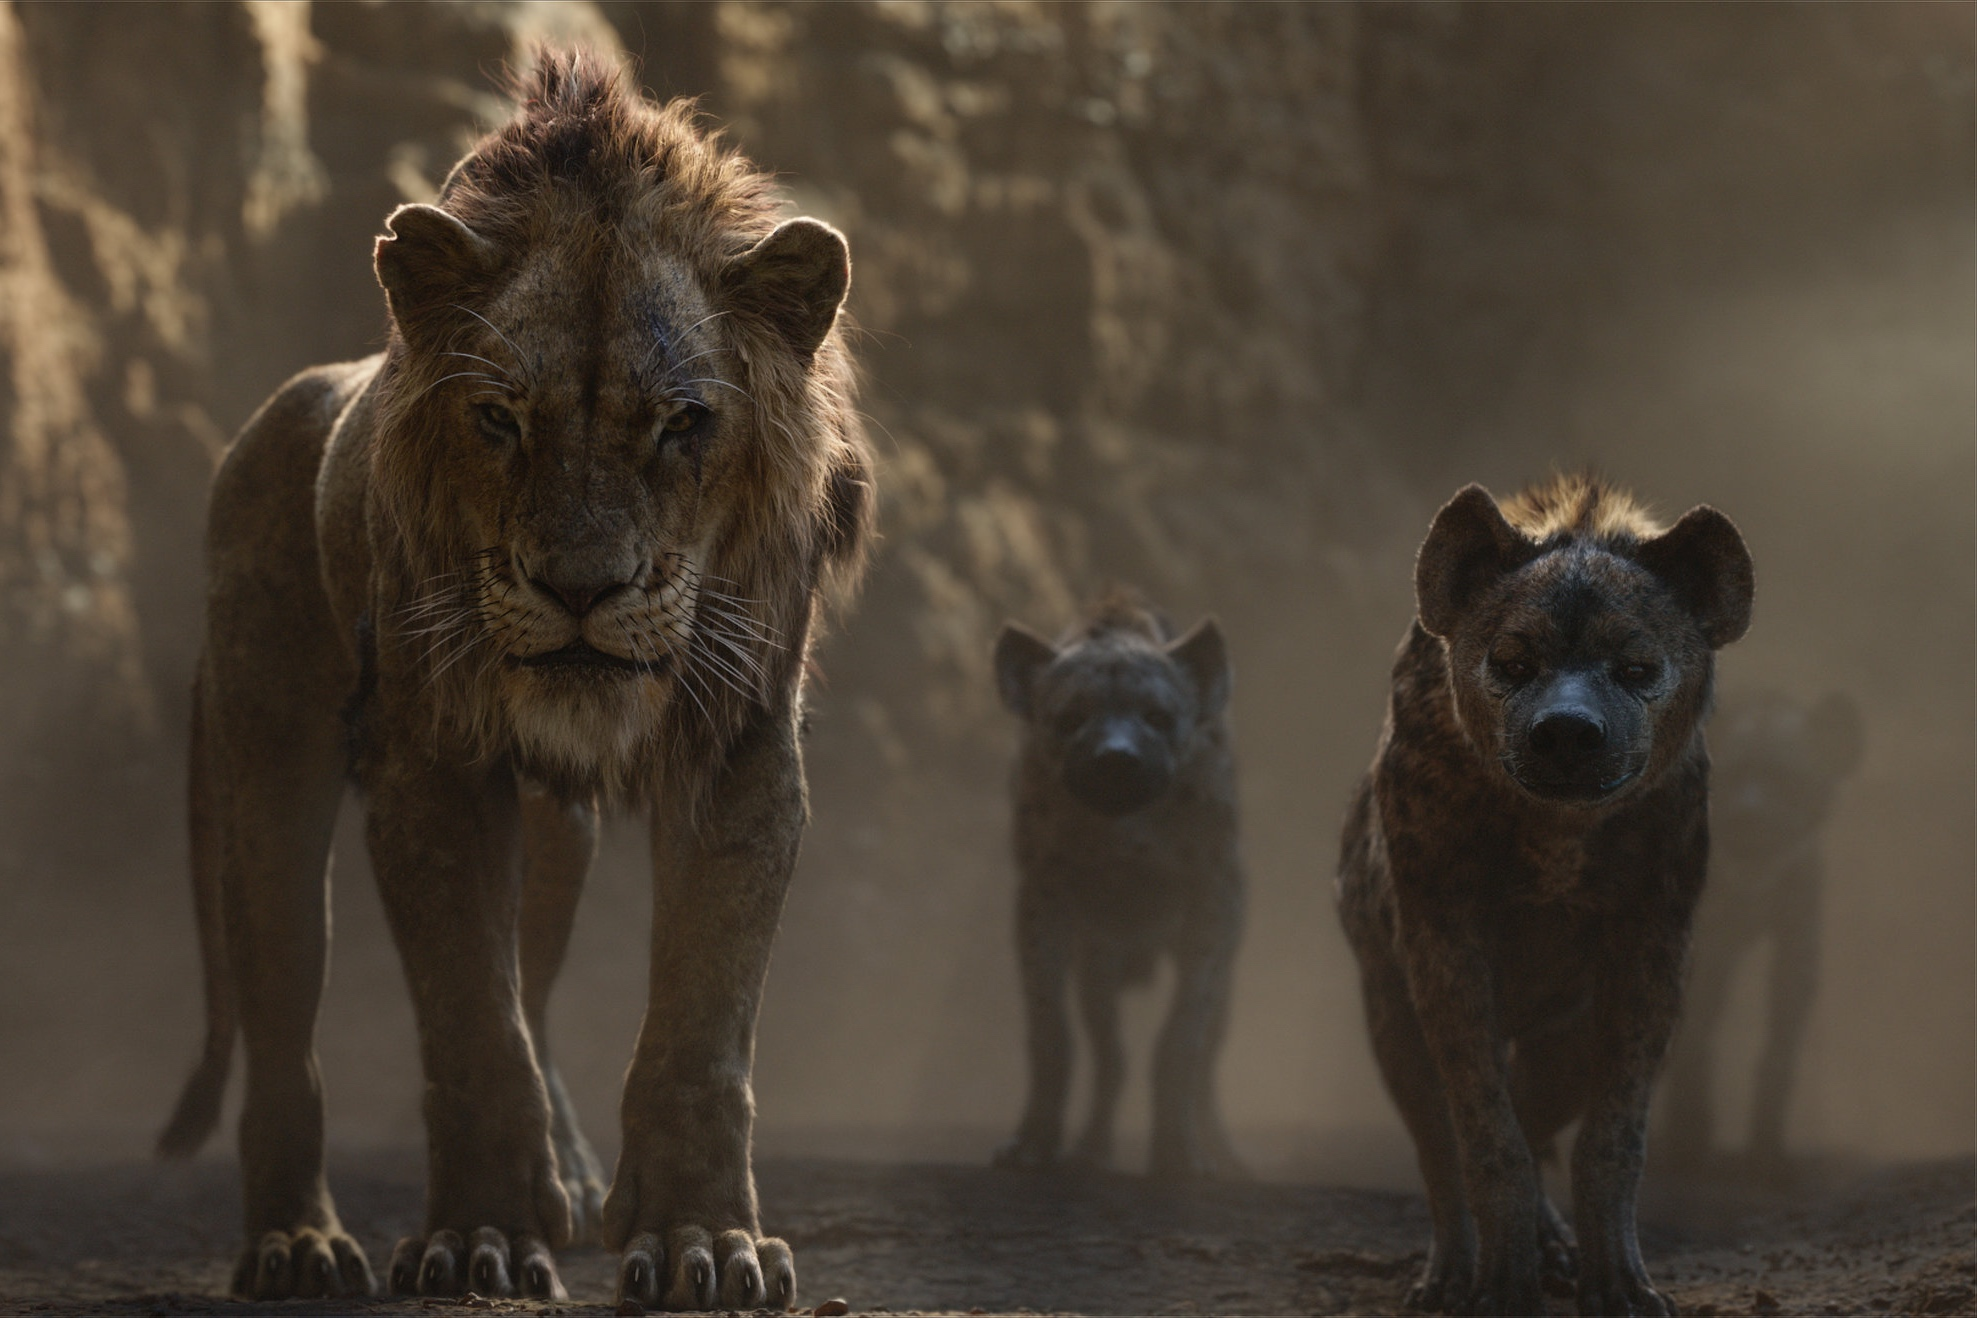 Scar (Ejiofor) with the hyenas being prepared.